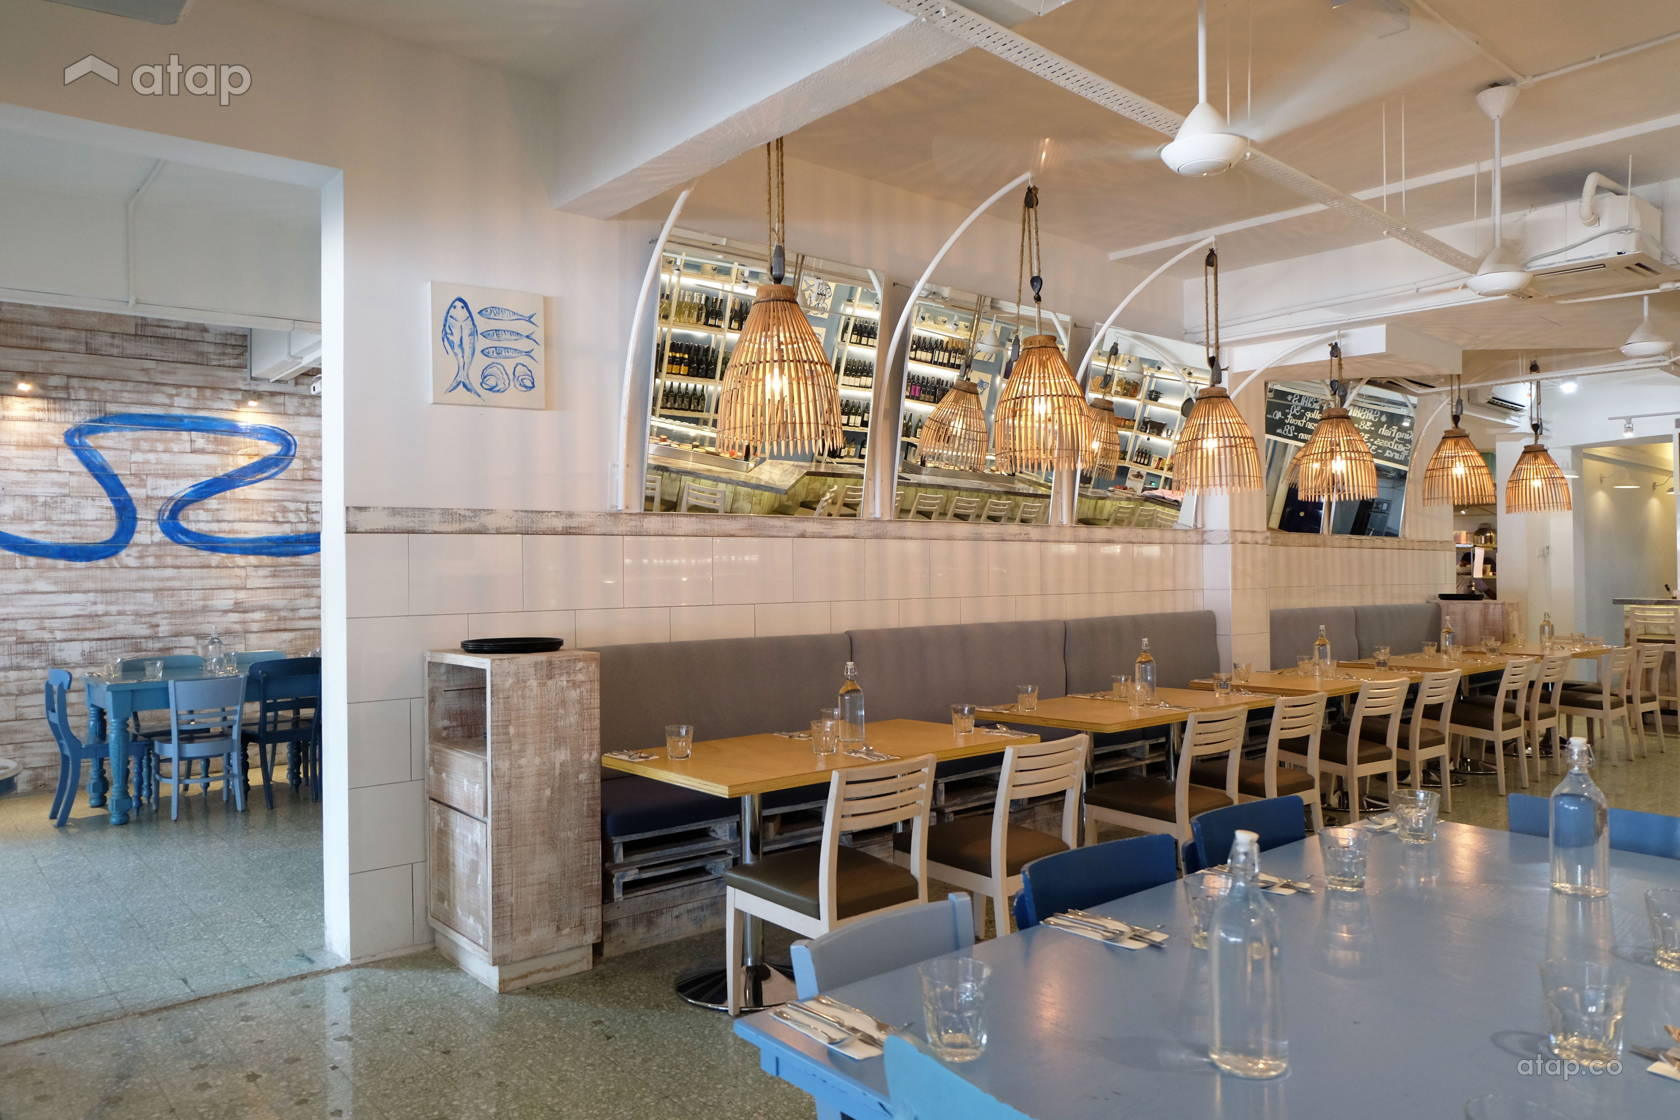 Southern Rock Seafood Restaurant Expansion Phase Lll Interior Design Renovation Ideas Photos And Price In Malaysia Atap Co